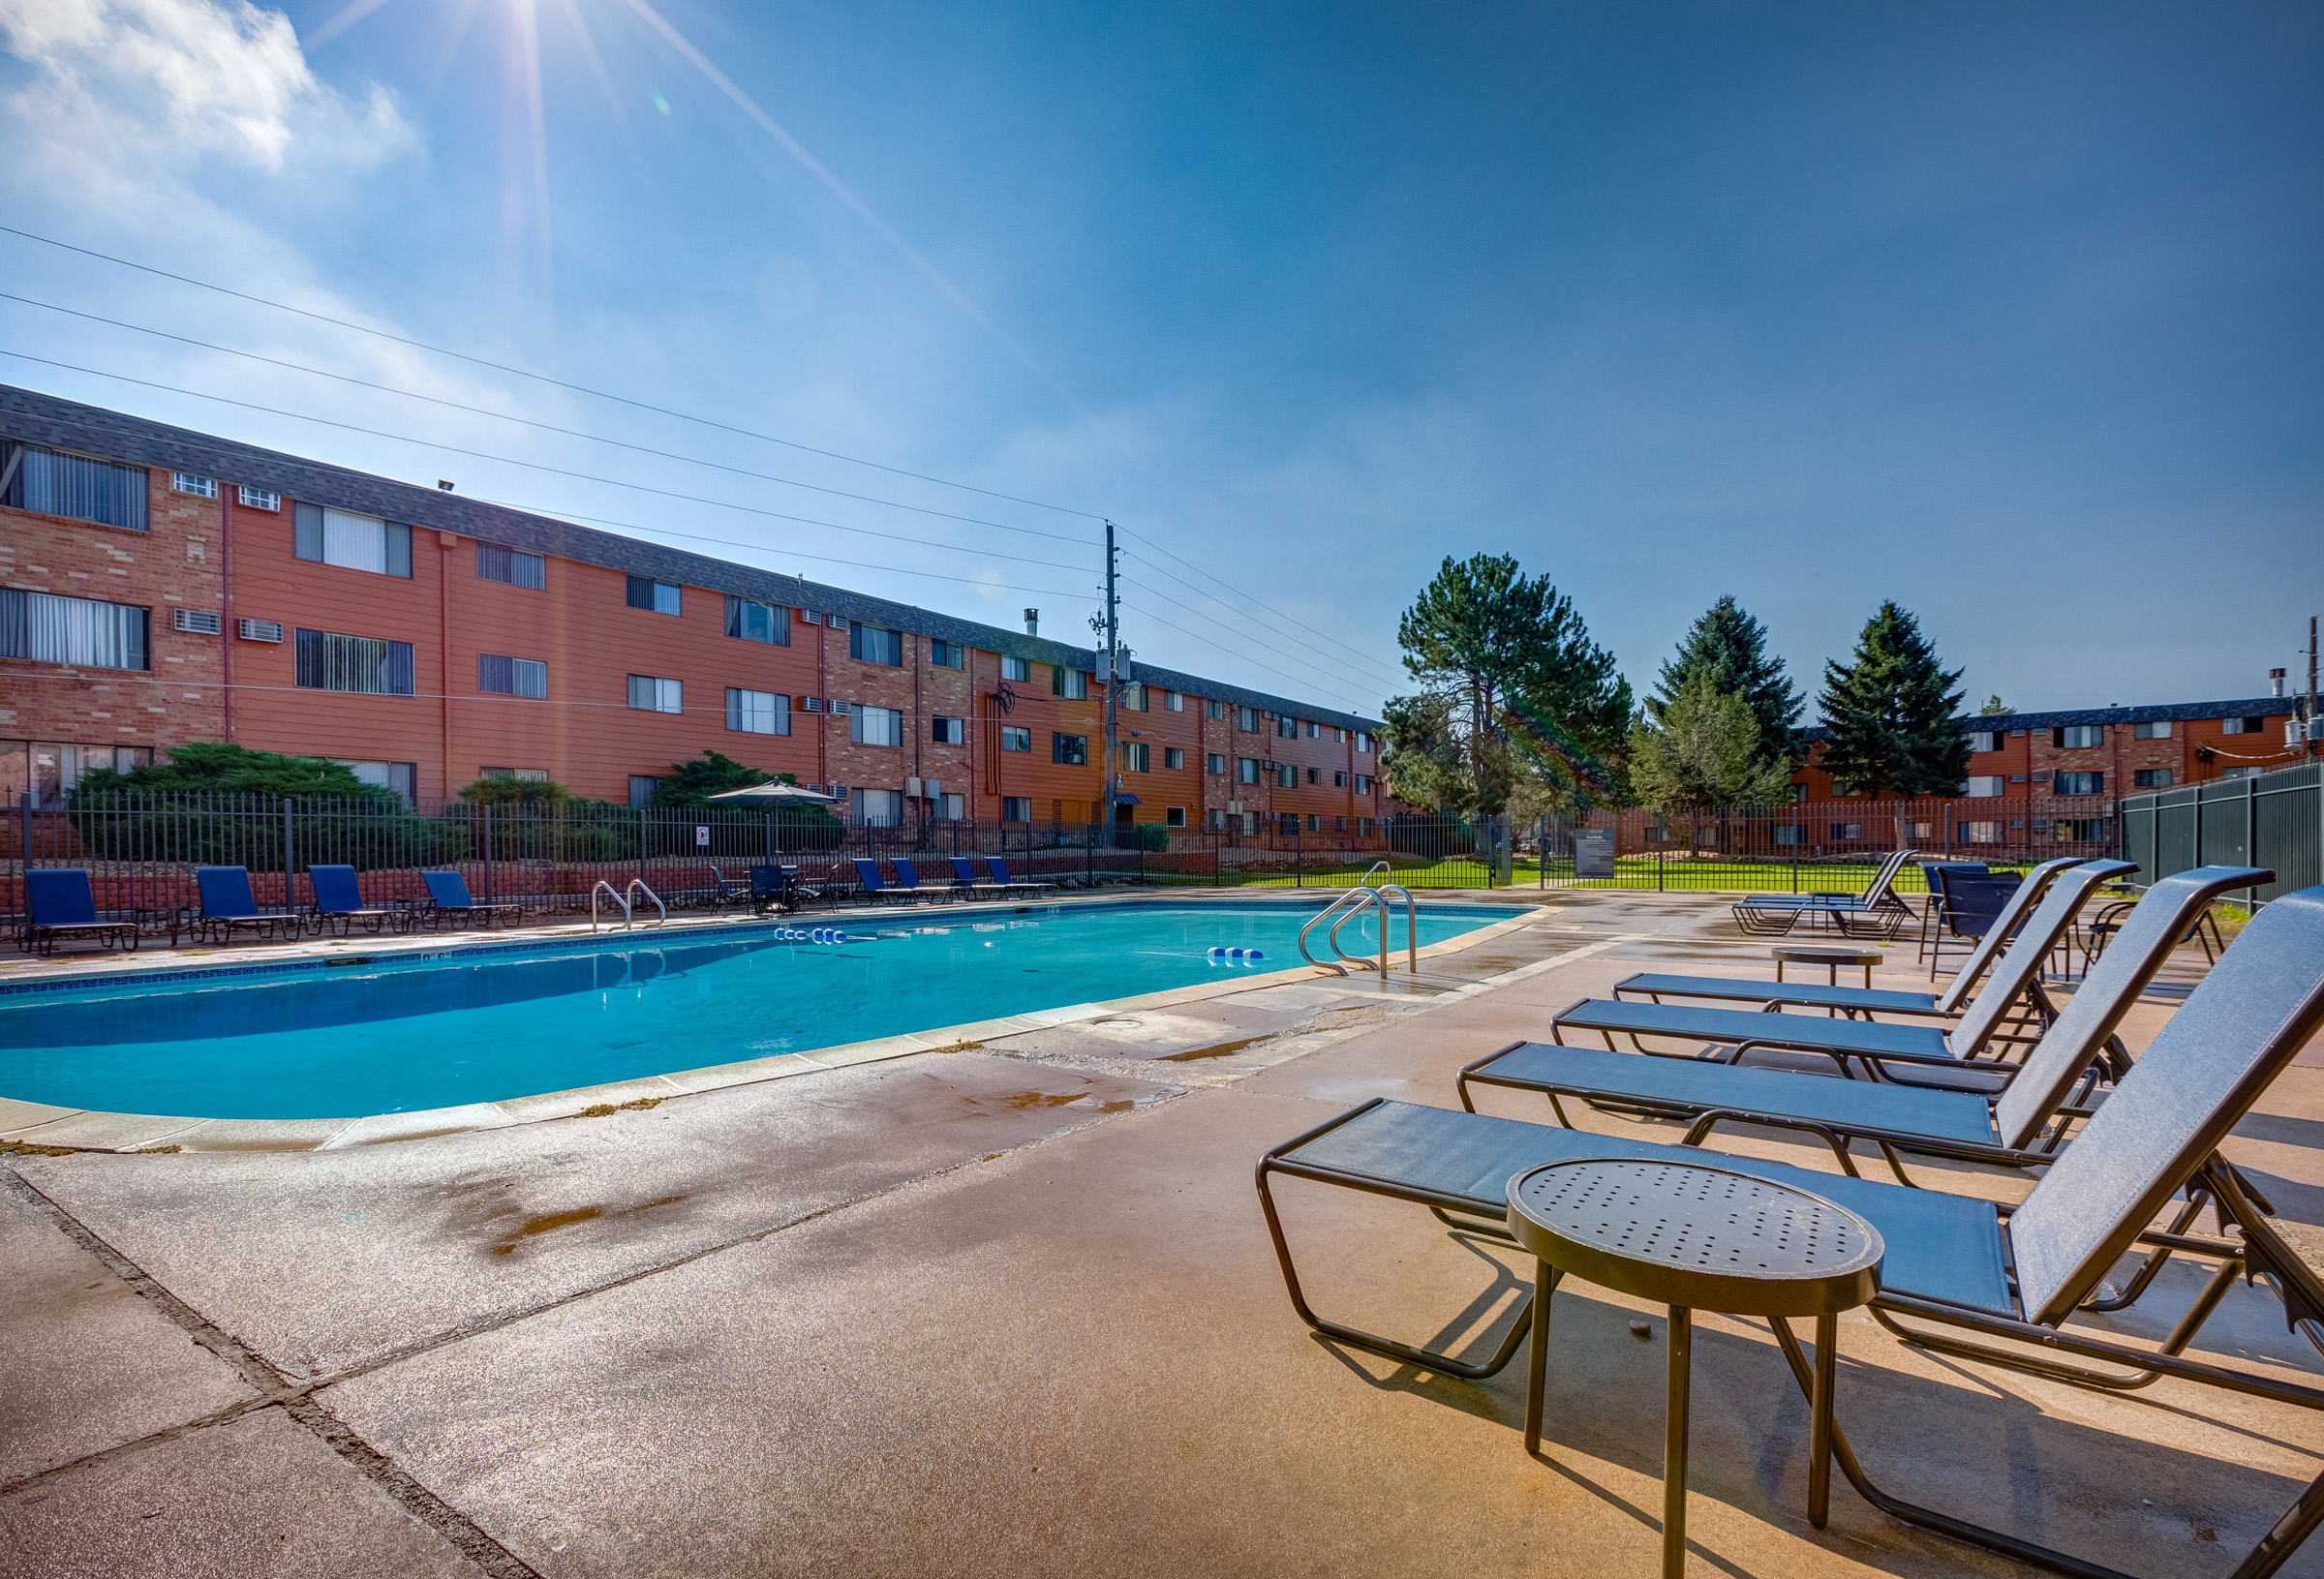 Vista Park - Apartment living on a 5-acre park-like setting with giant evergreens, bushes and green lawns right in the city of Aurora